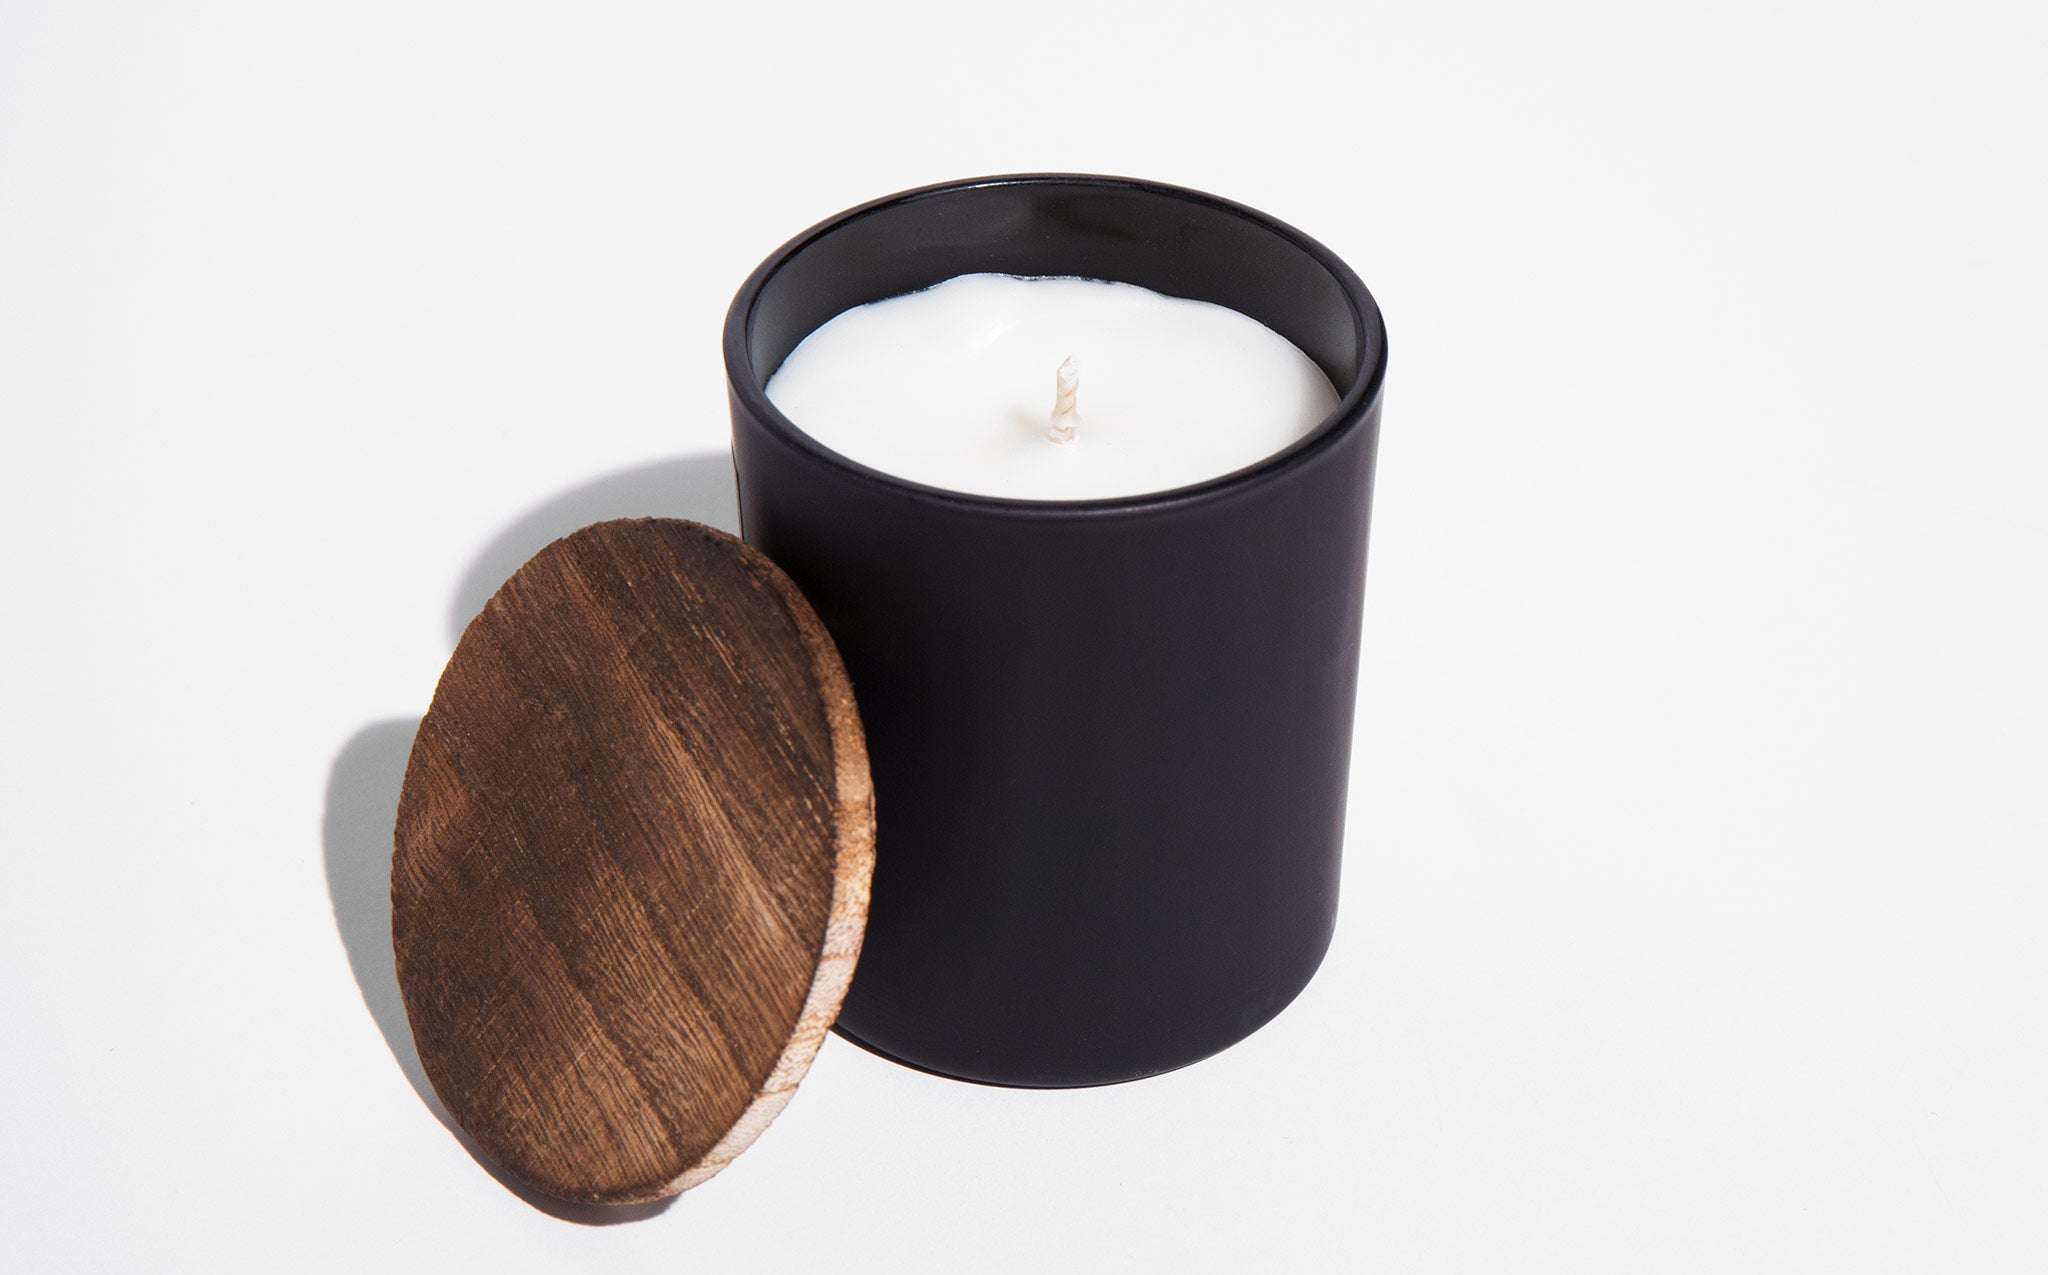 Basik Candle Co Blood Orange and Bergamot Candle